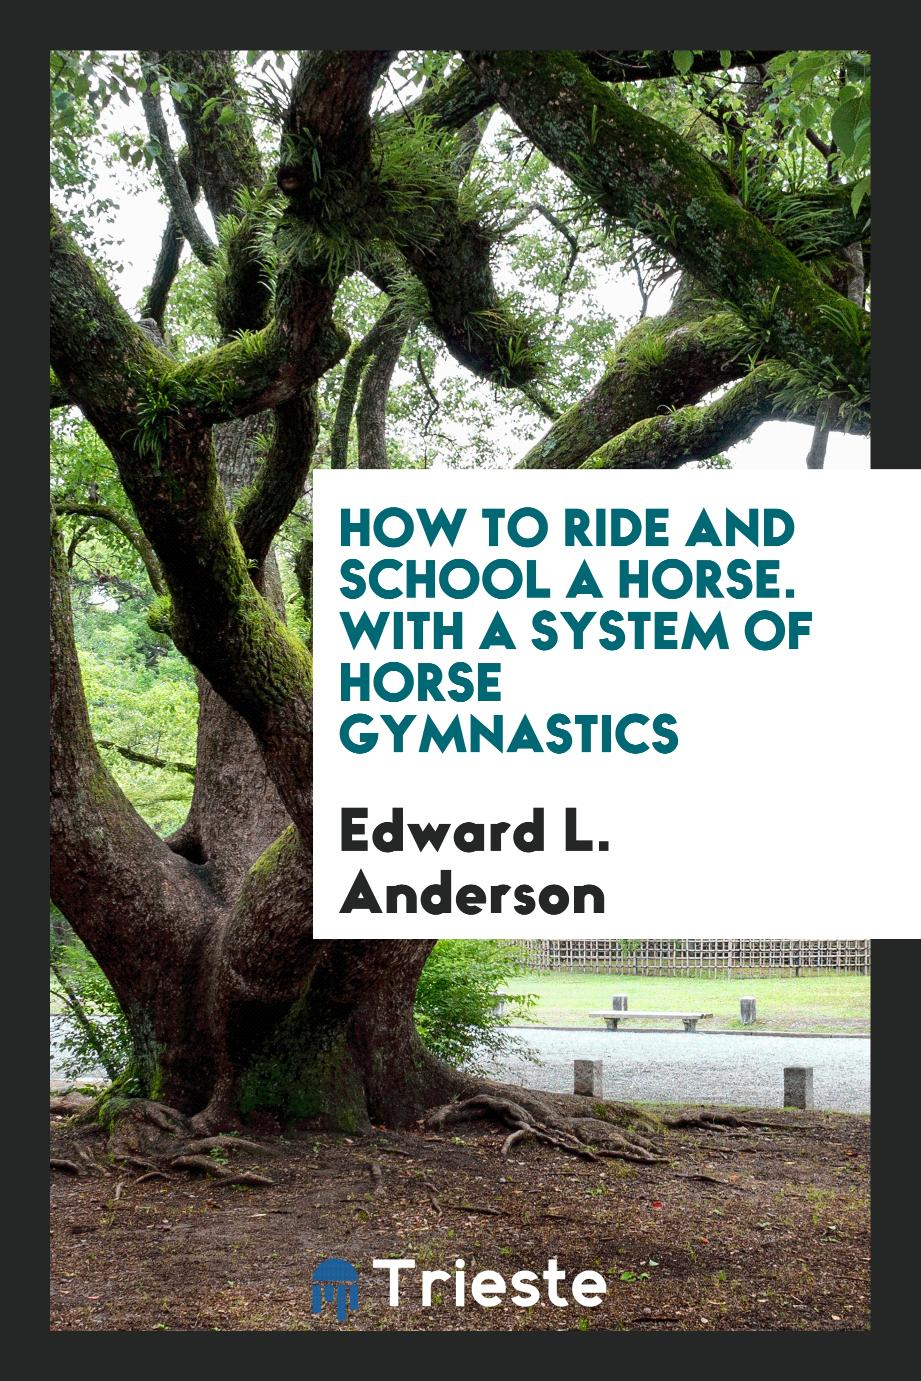 How to Ride and School a Horse. With a System of Horse Gymnastics